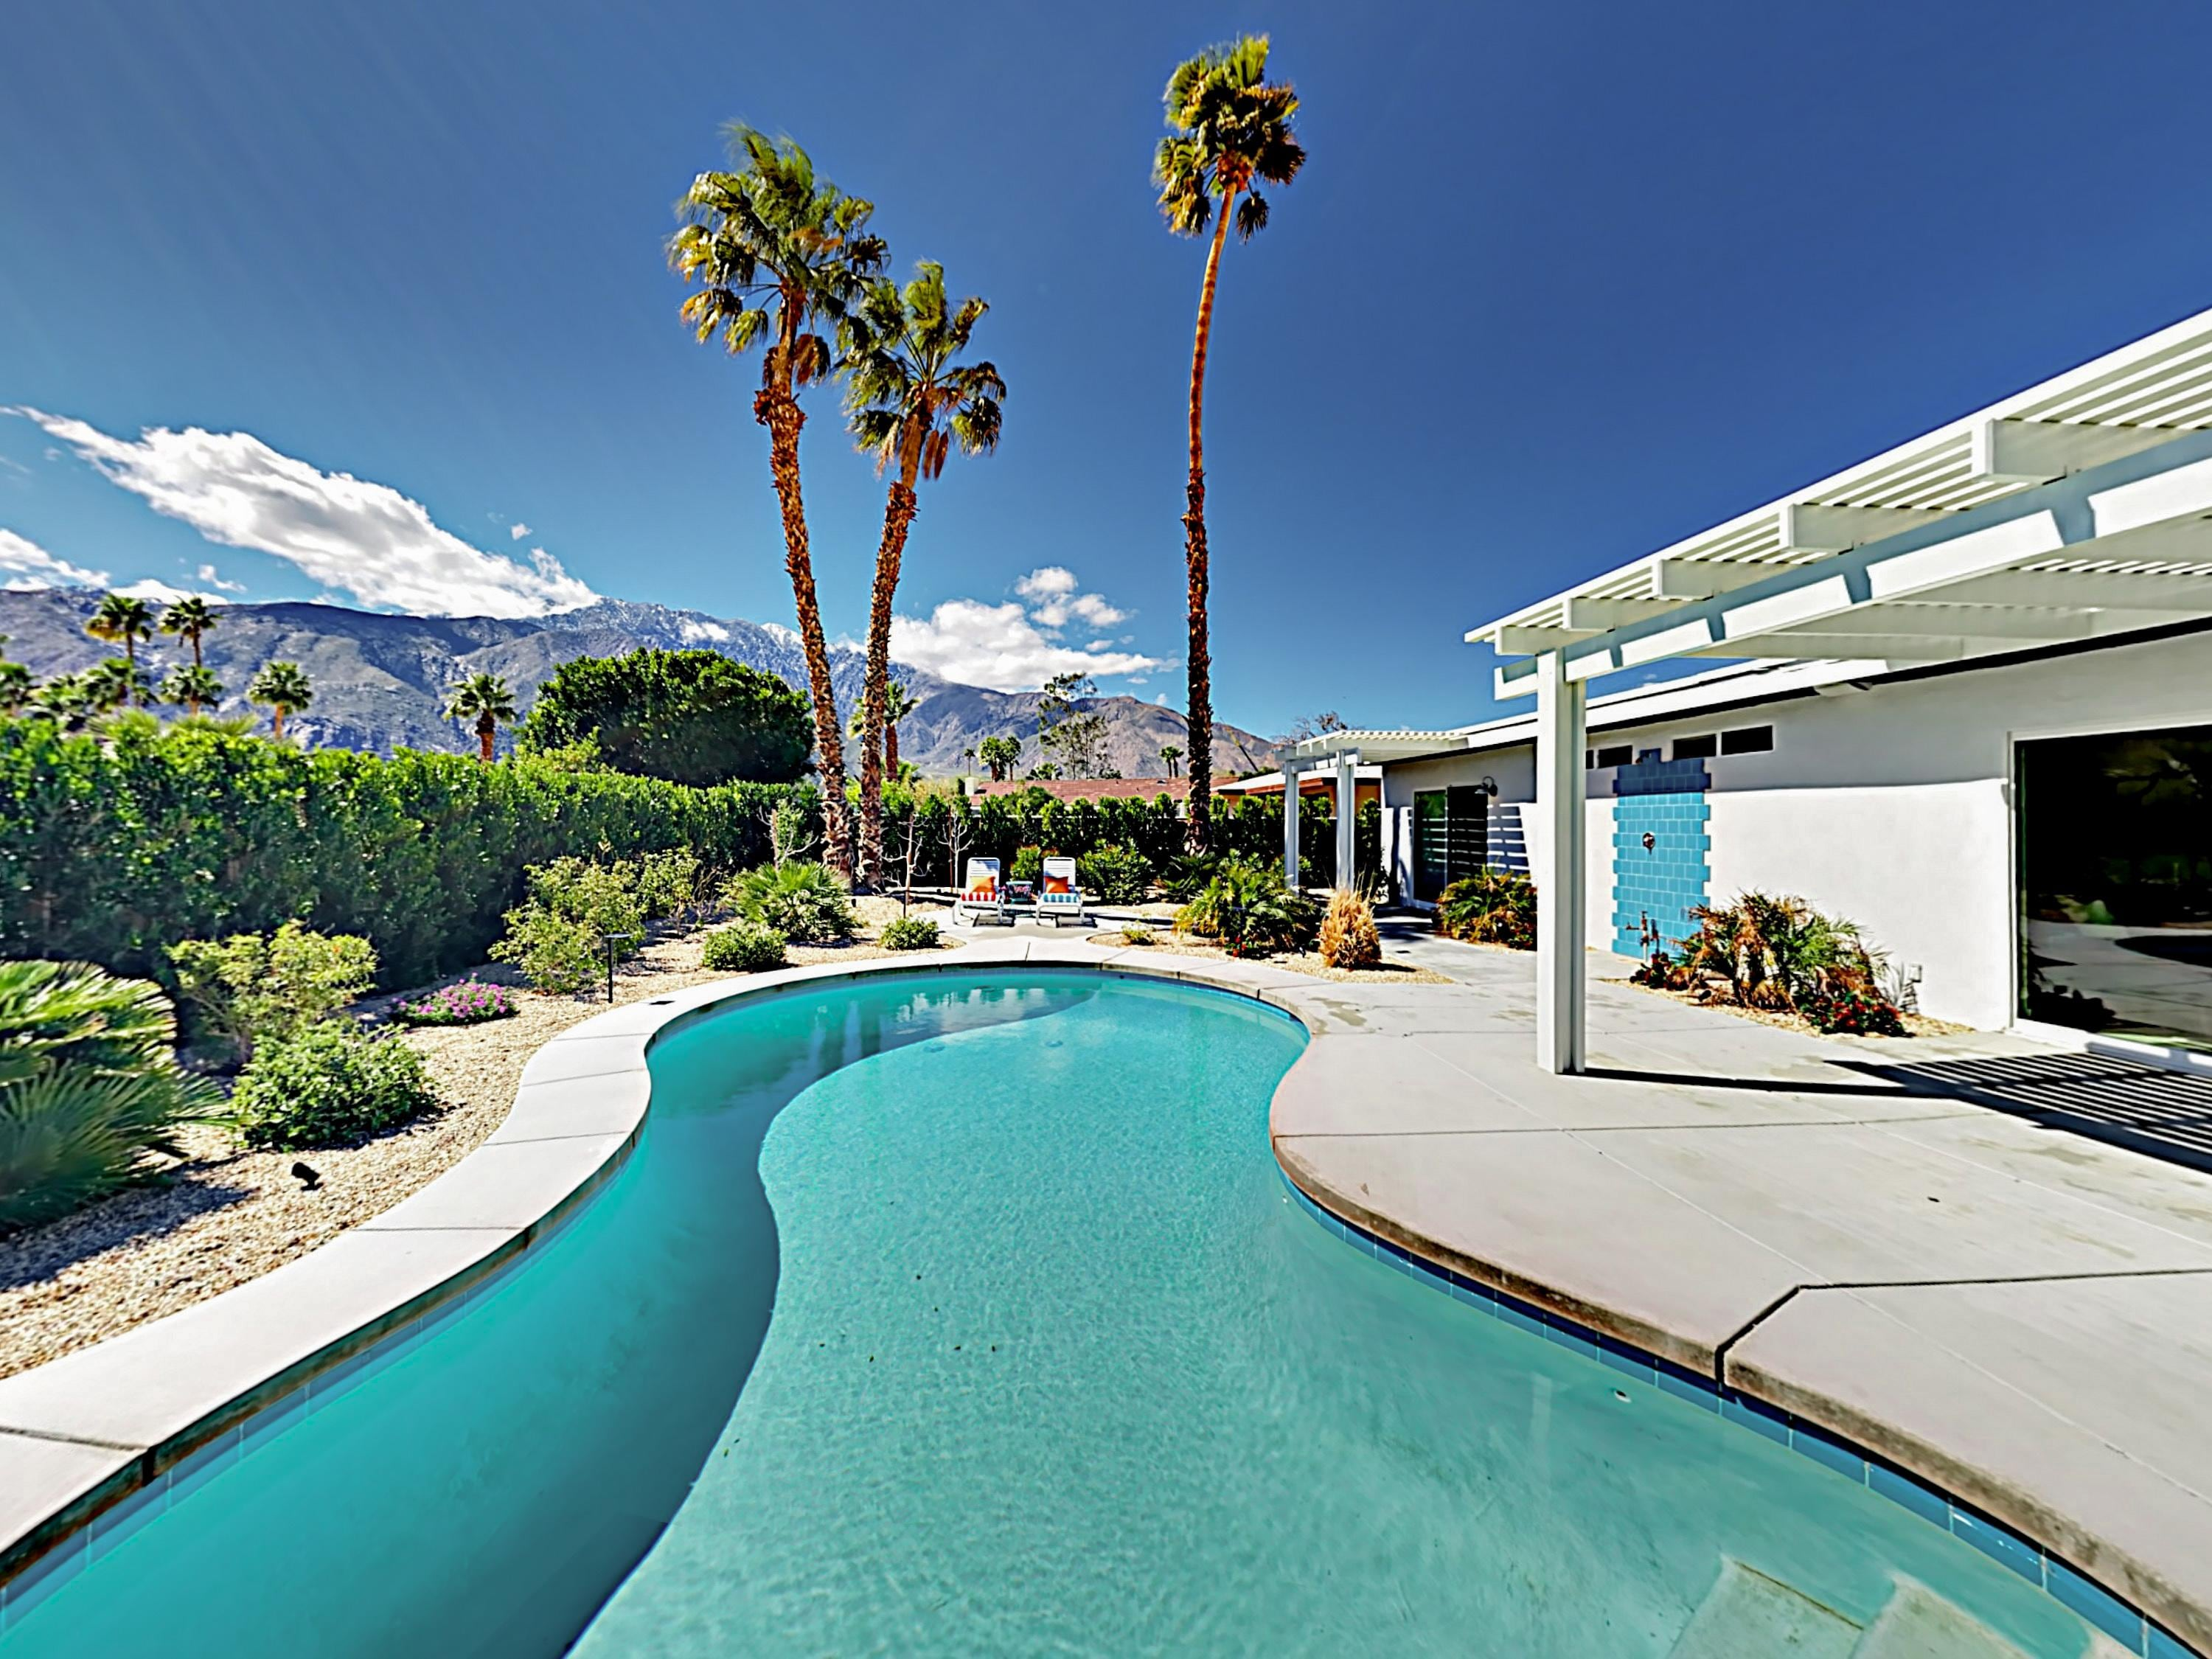 Property Image 1 - Spacious, Sun-soaked Home Featuring Southwest Mountain Views